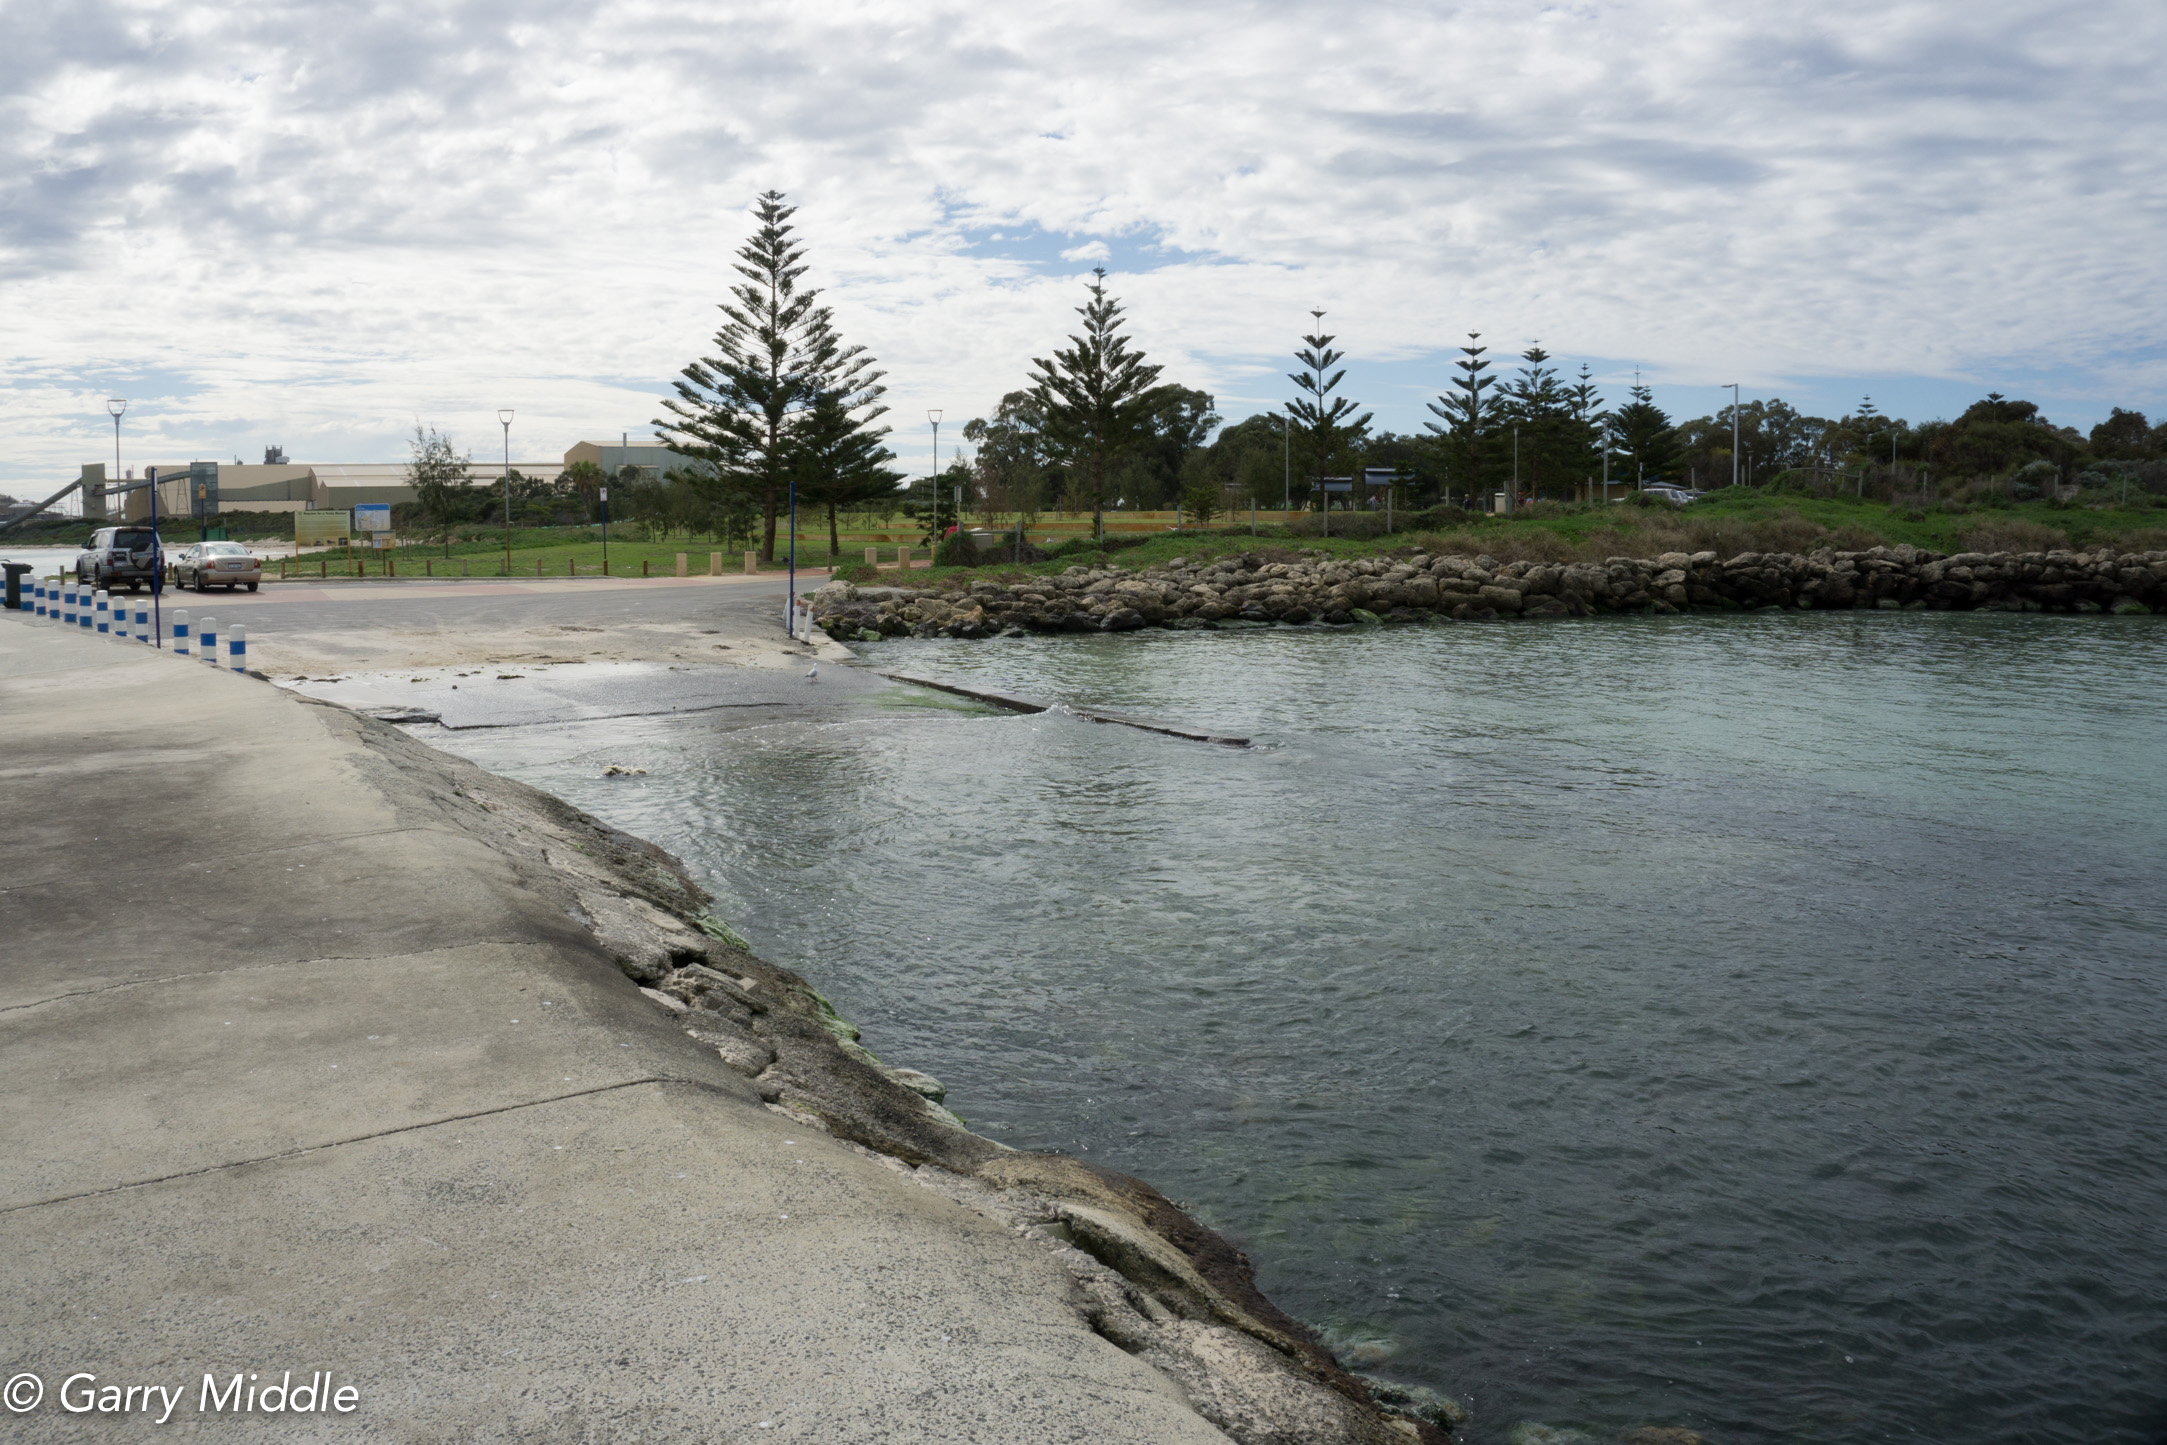 Plate 26: View of Kwinana Beach grassed area from the Kwinana wreck